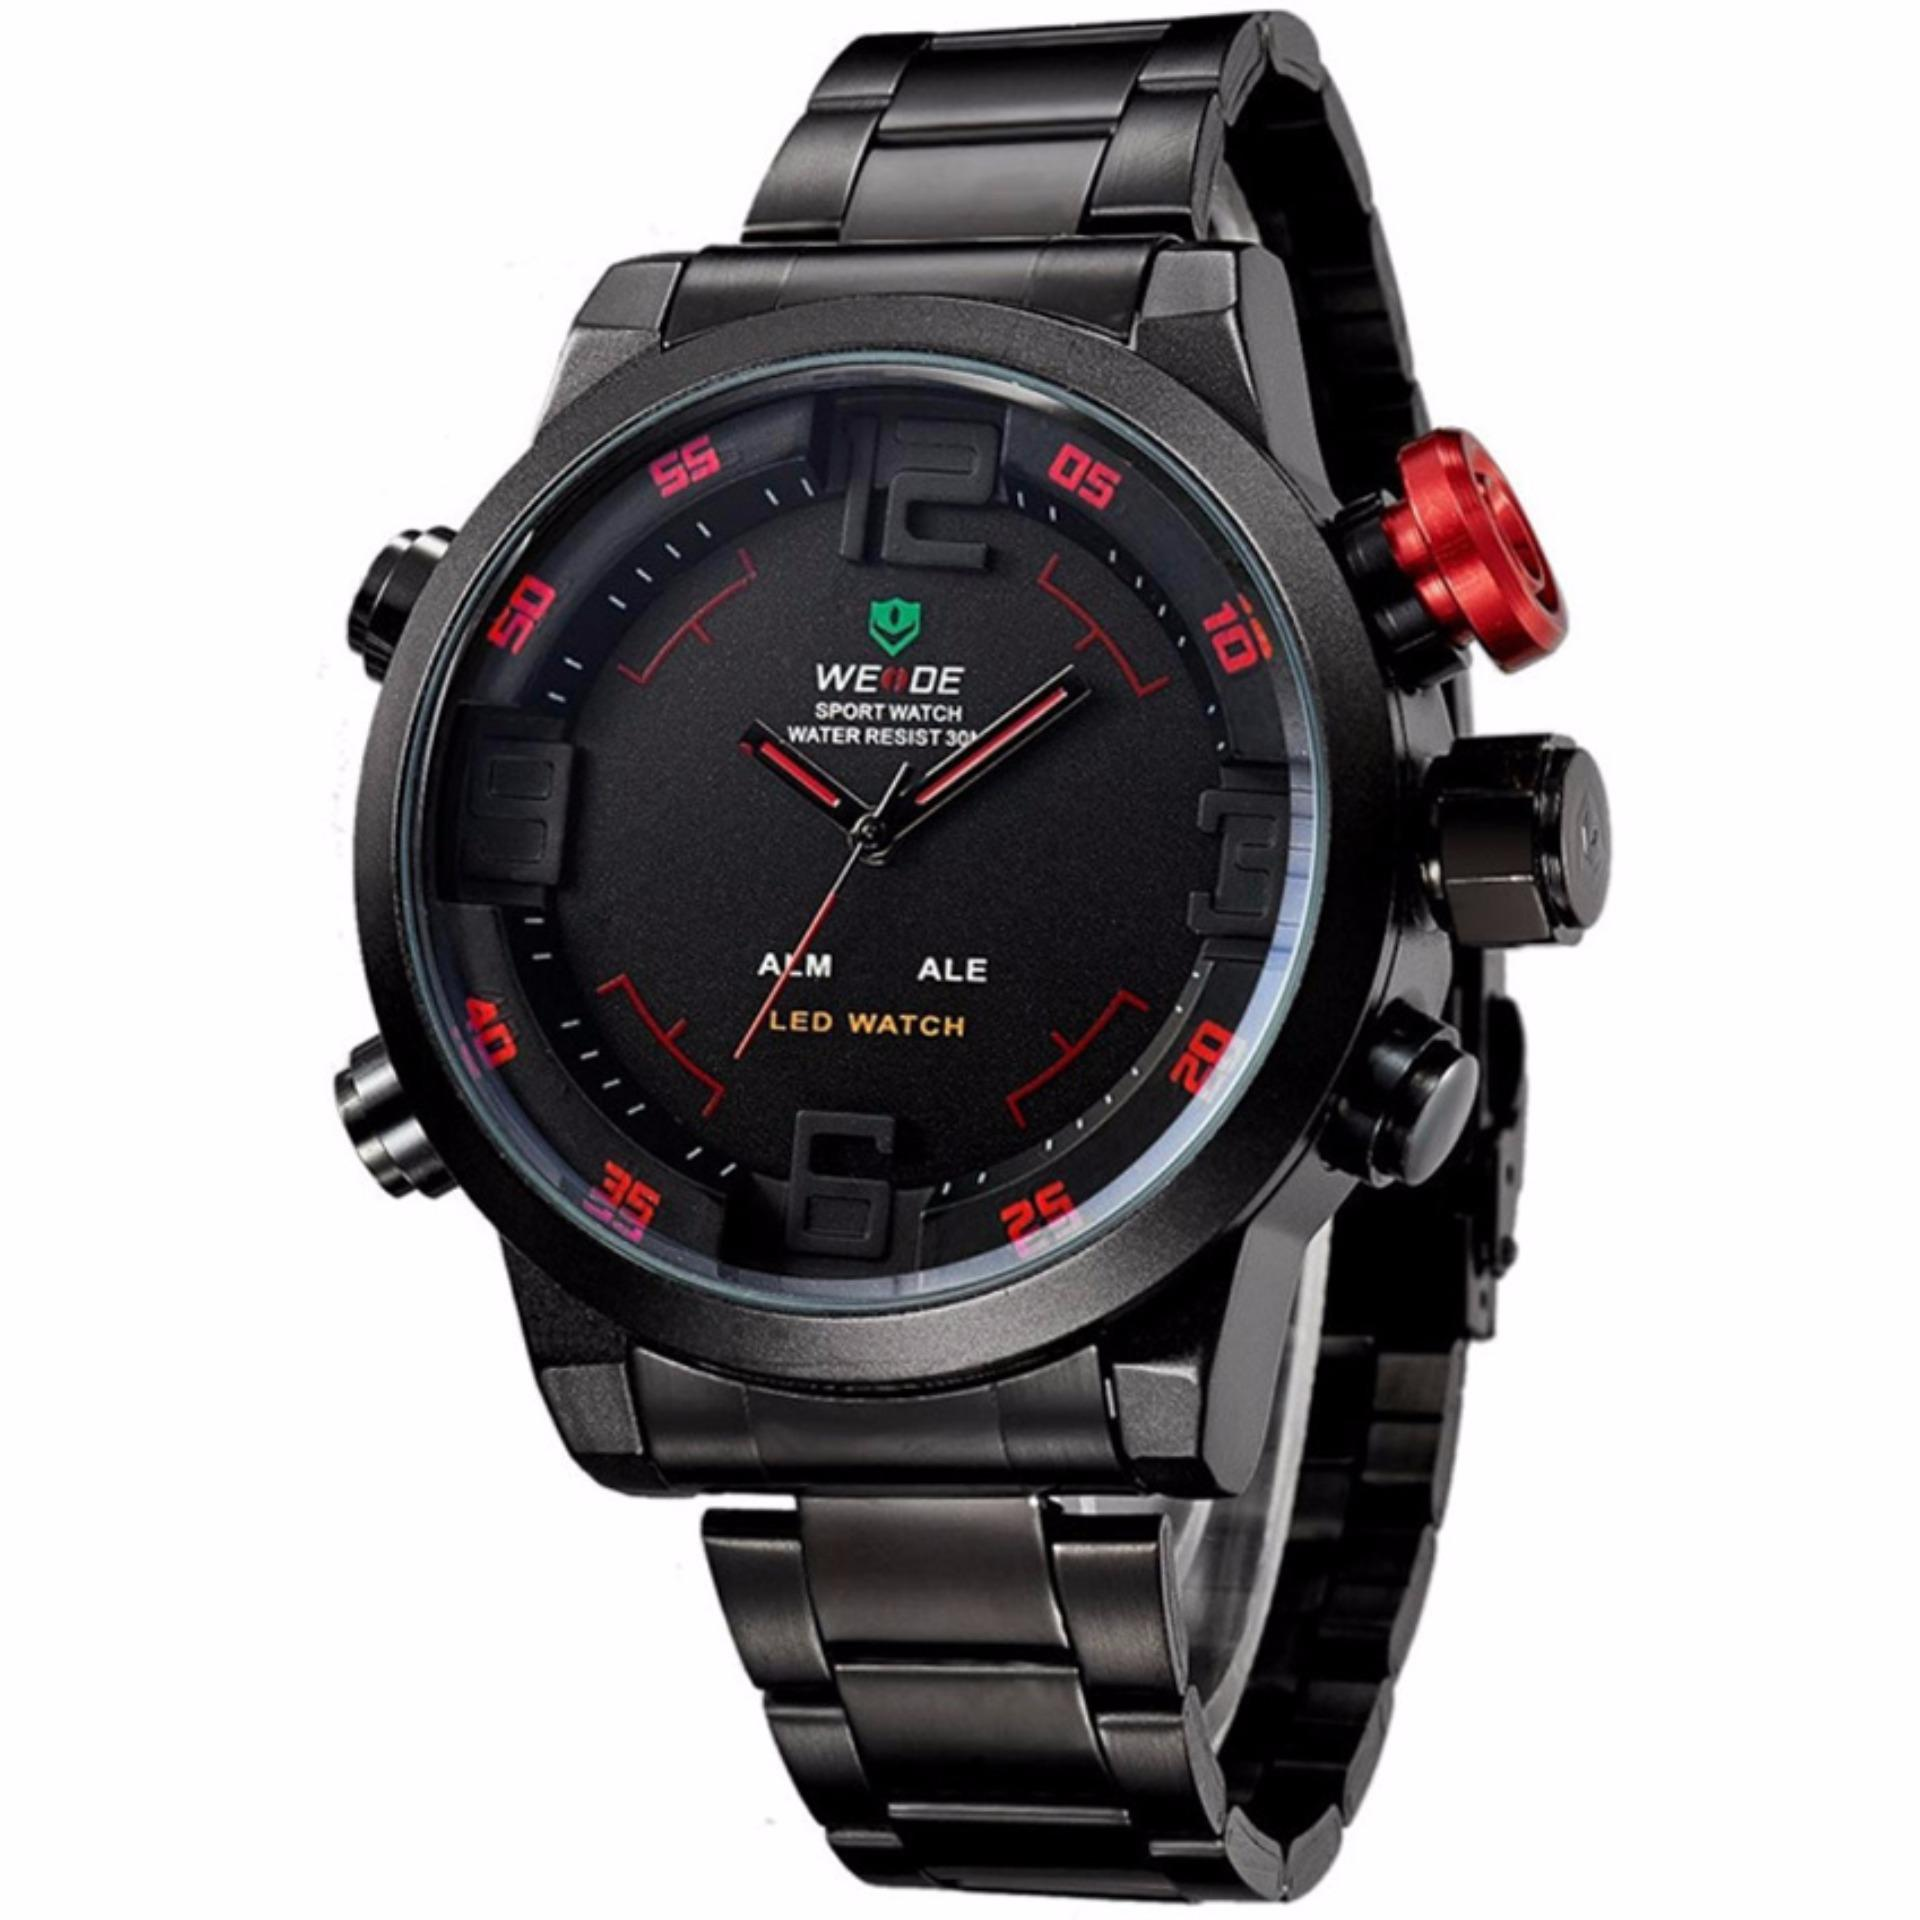 Часы weide sport watch отзывы